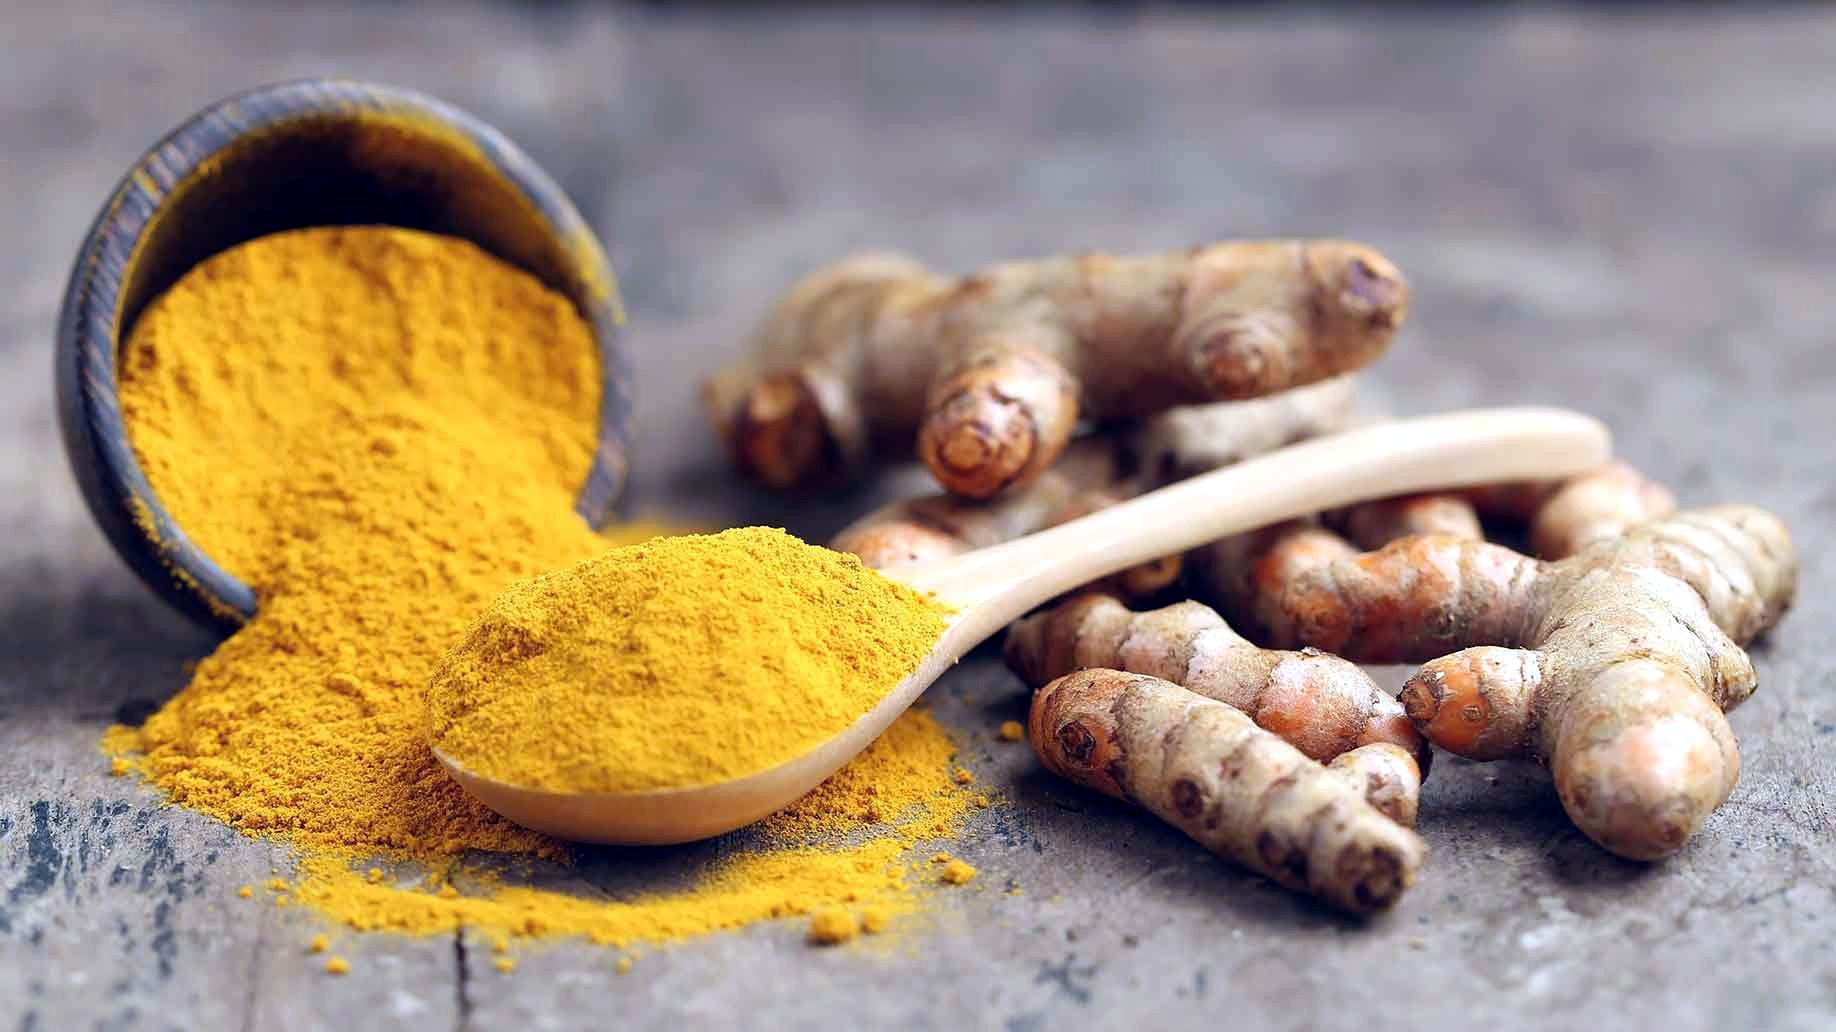 Tumeric Combined with 3D Printed Bone Scaffolds Prompt Growth | All3DP